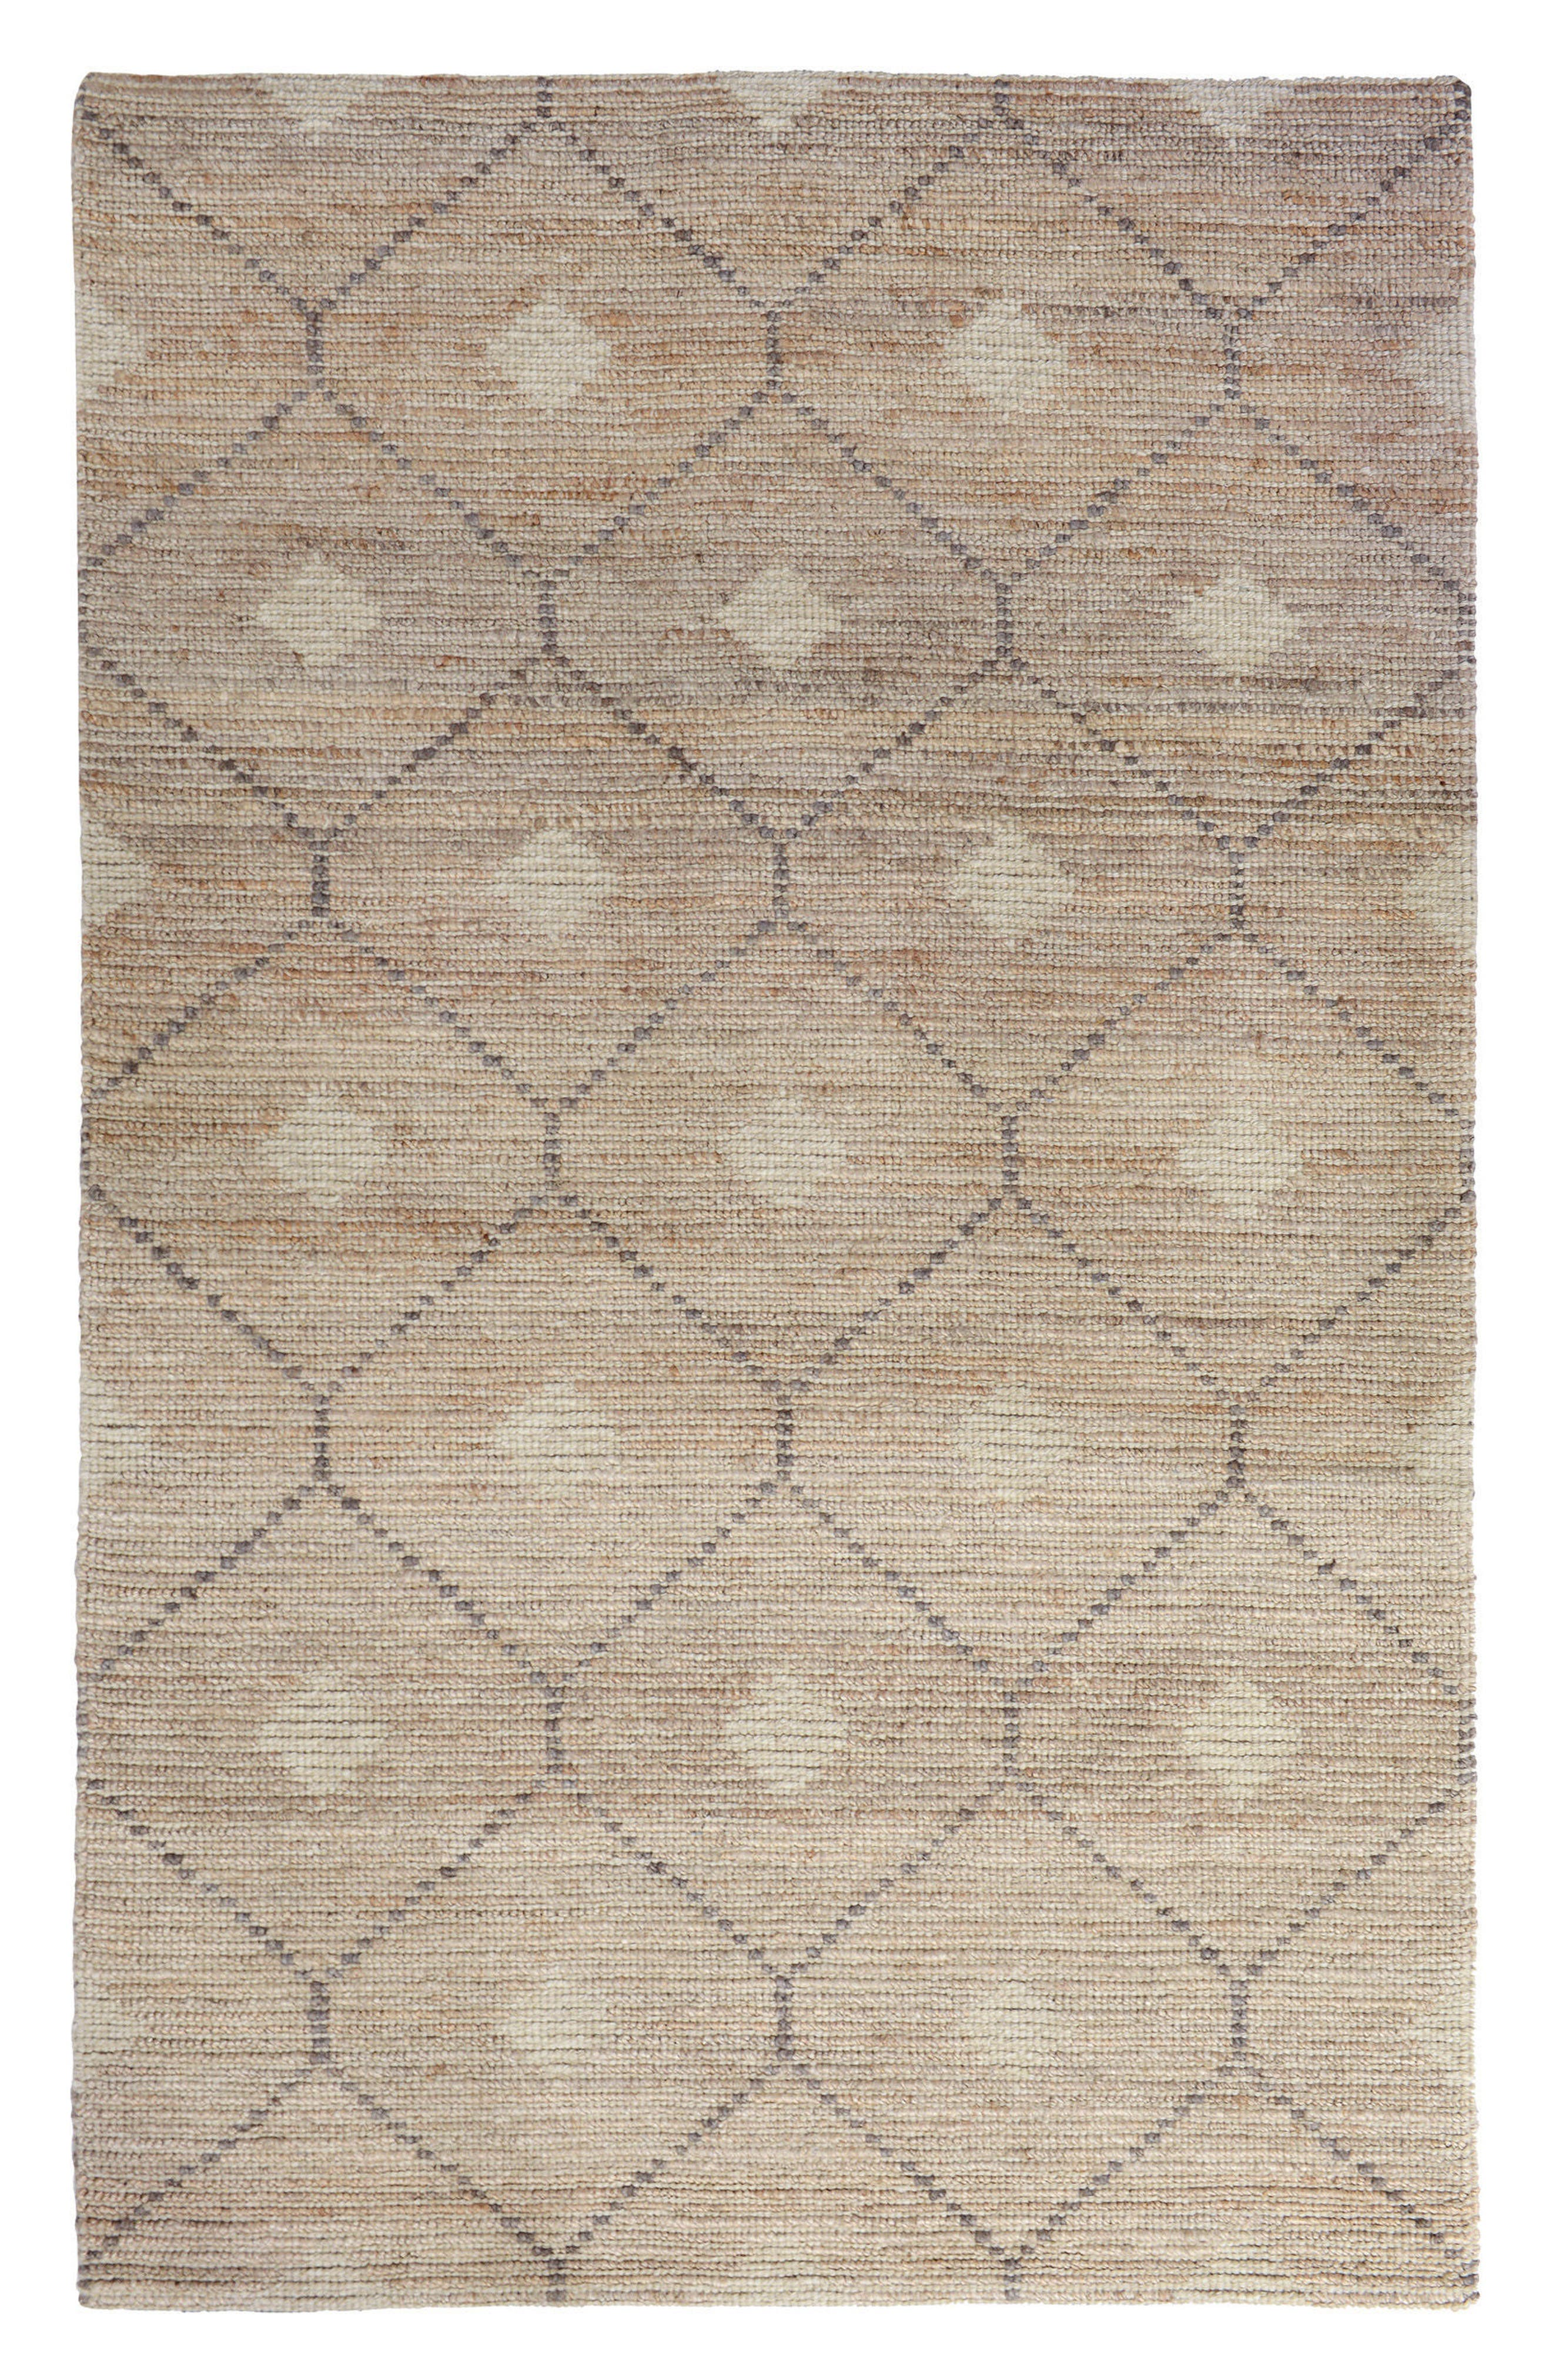 Rustica Handwoven Rug,                             Main thumbnail 1, color,                             250